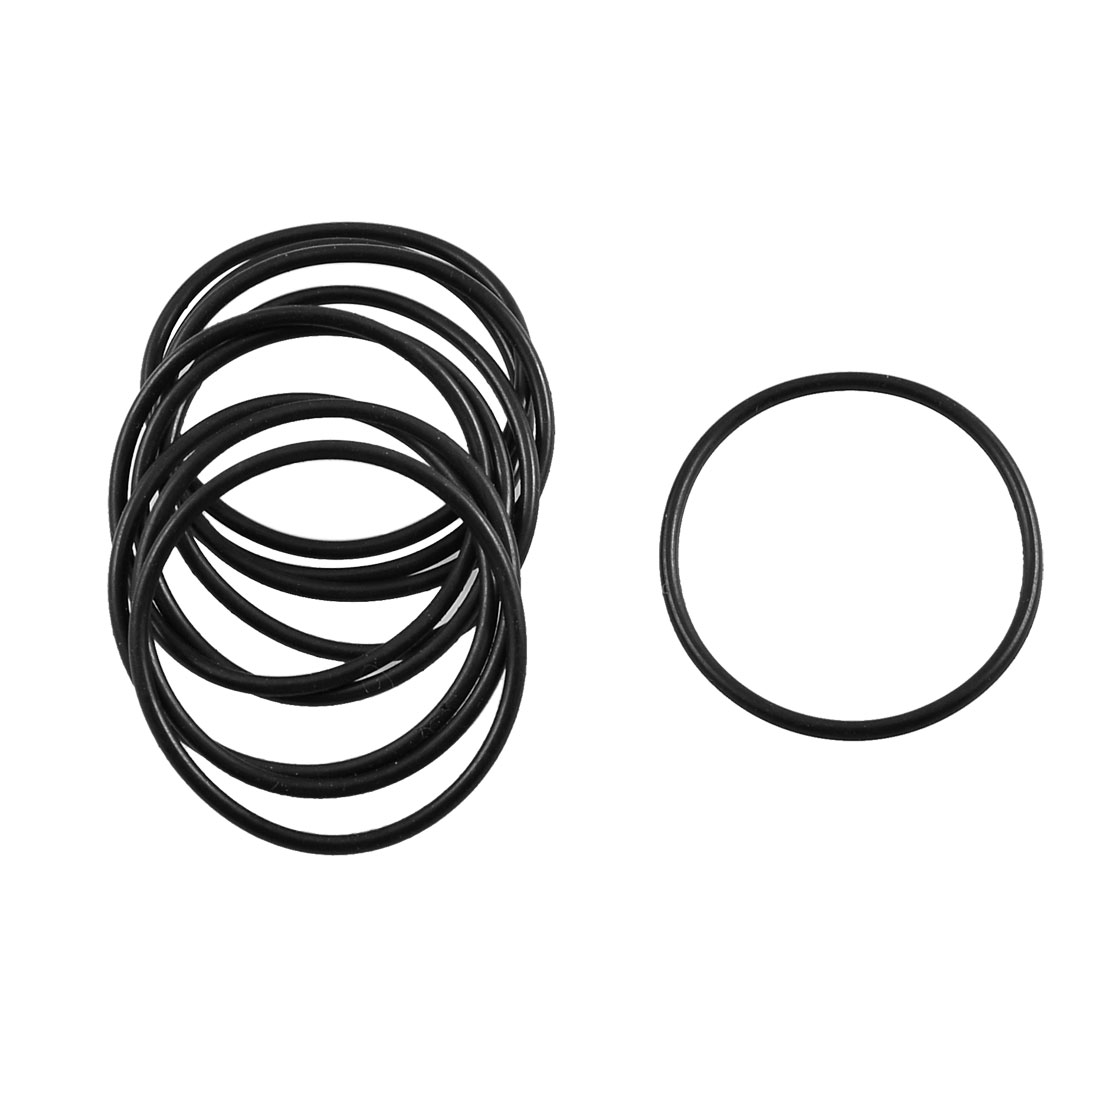 10 Pcs Black Rubber O Ring Oil Seal Sealing Gasket Washer 32.5mm x 1.8mm